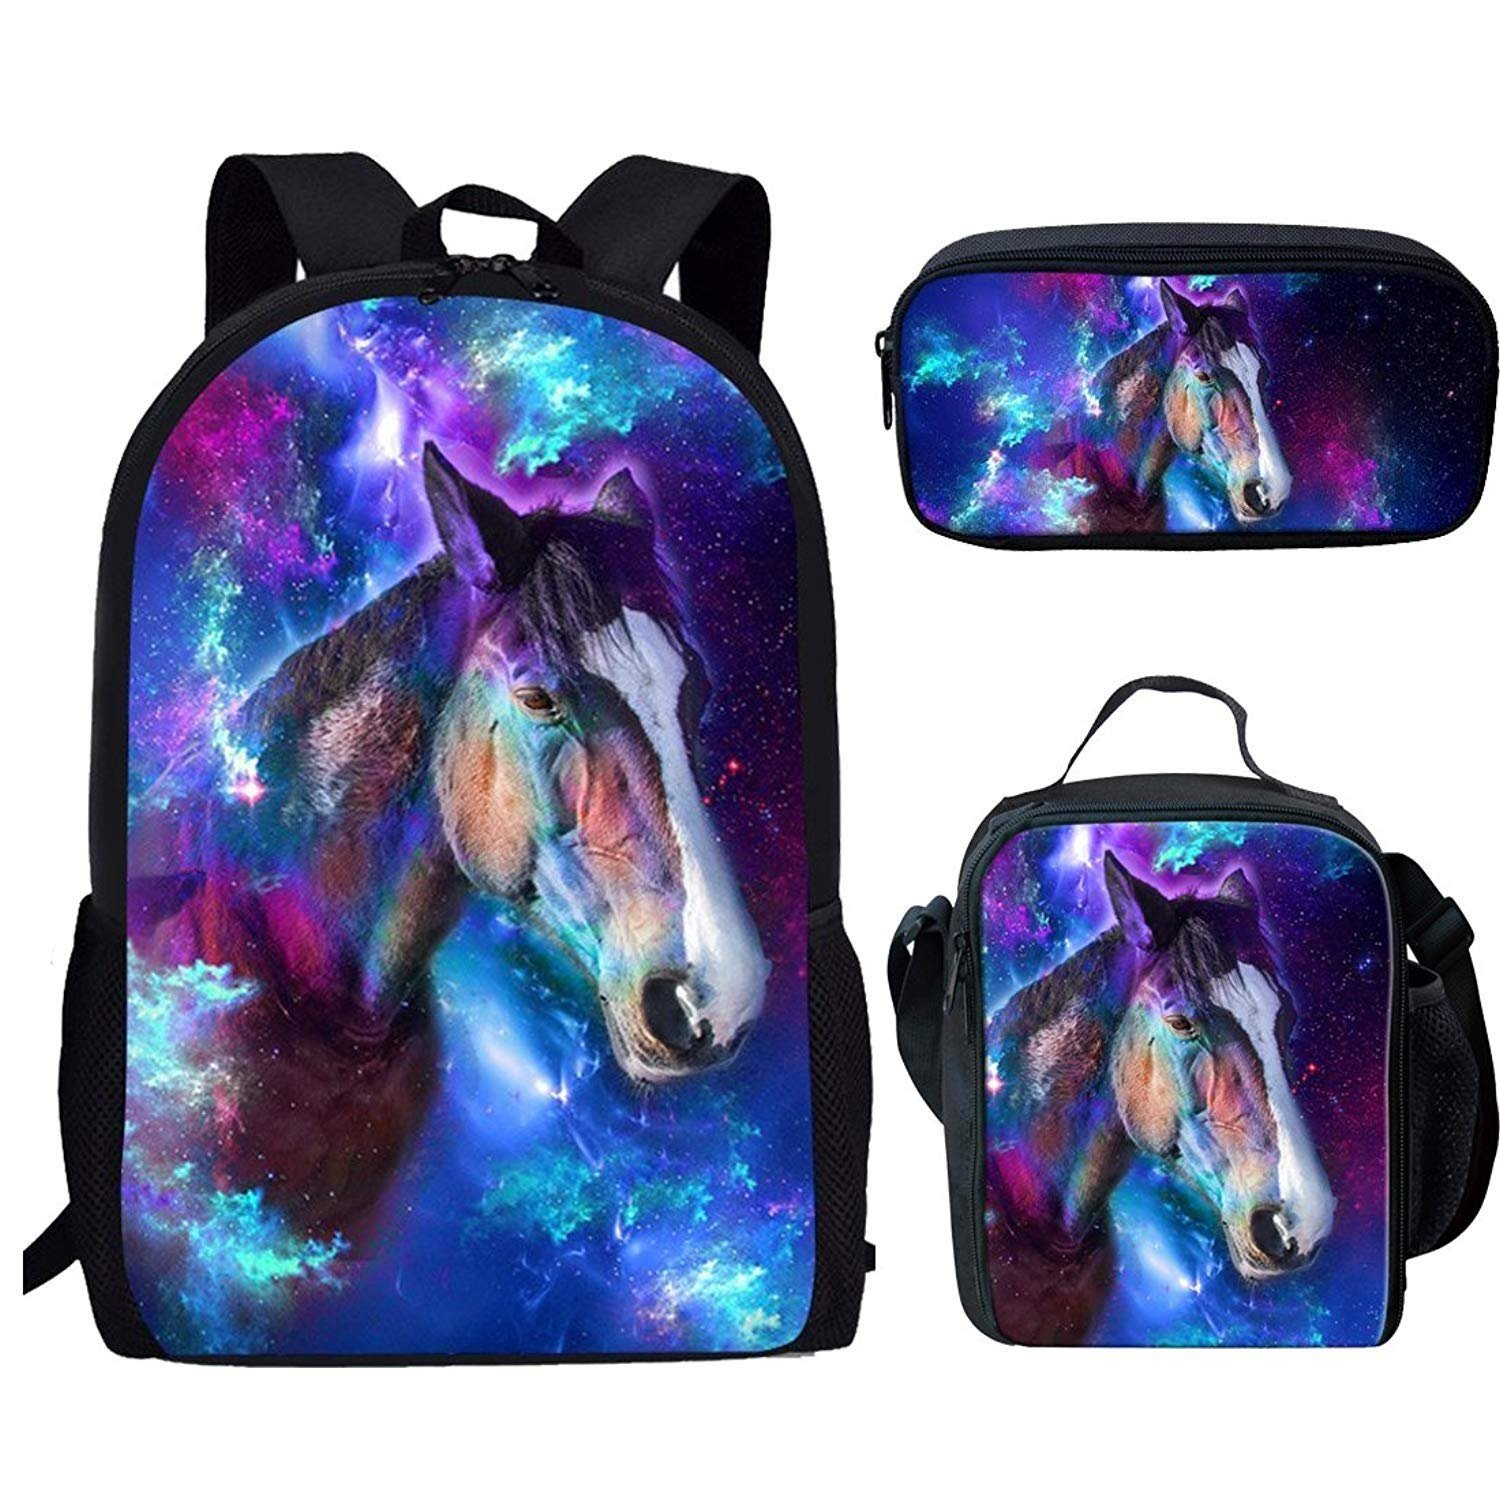 3dbd837a6c7c HUGS IDEA Galaxy Horse Backpack Set for Teen Boys School Book Bag with  Thermal Lunchbag Pencil Case